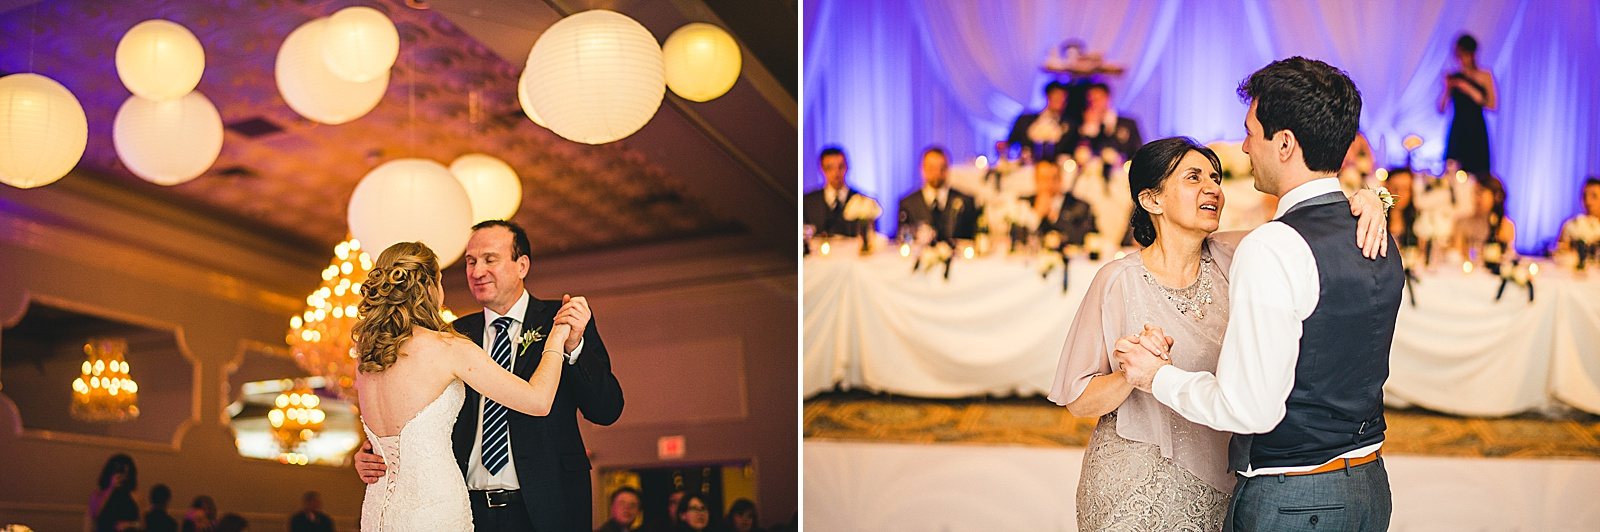 35 parent dances at wedding - Oakbrook Wedding Photos at Drury Lane // Marina + Joe